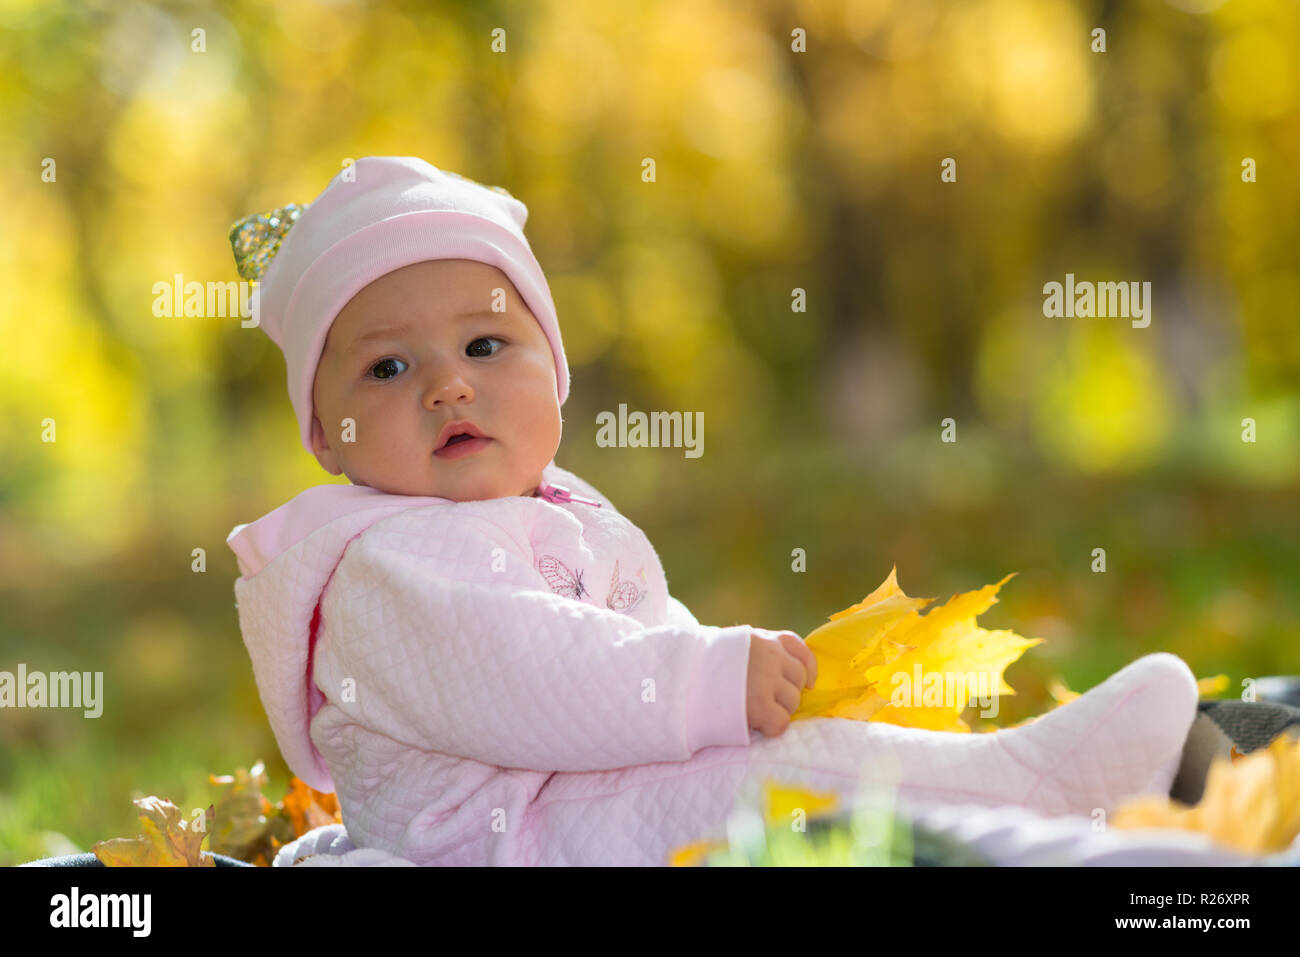 A baby in pink clothing sitting amongst yellow autumn fall leaves in a park scene